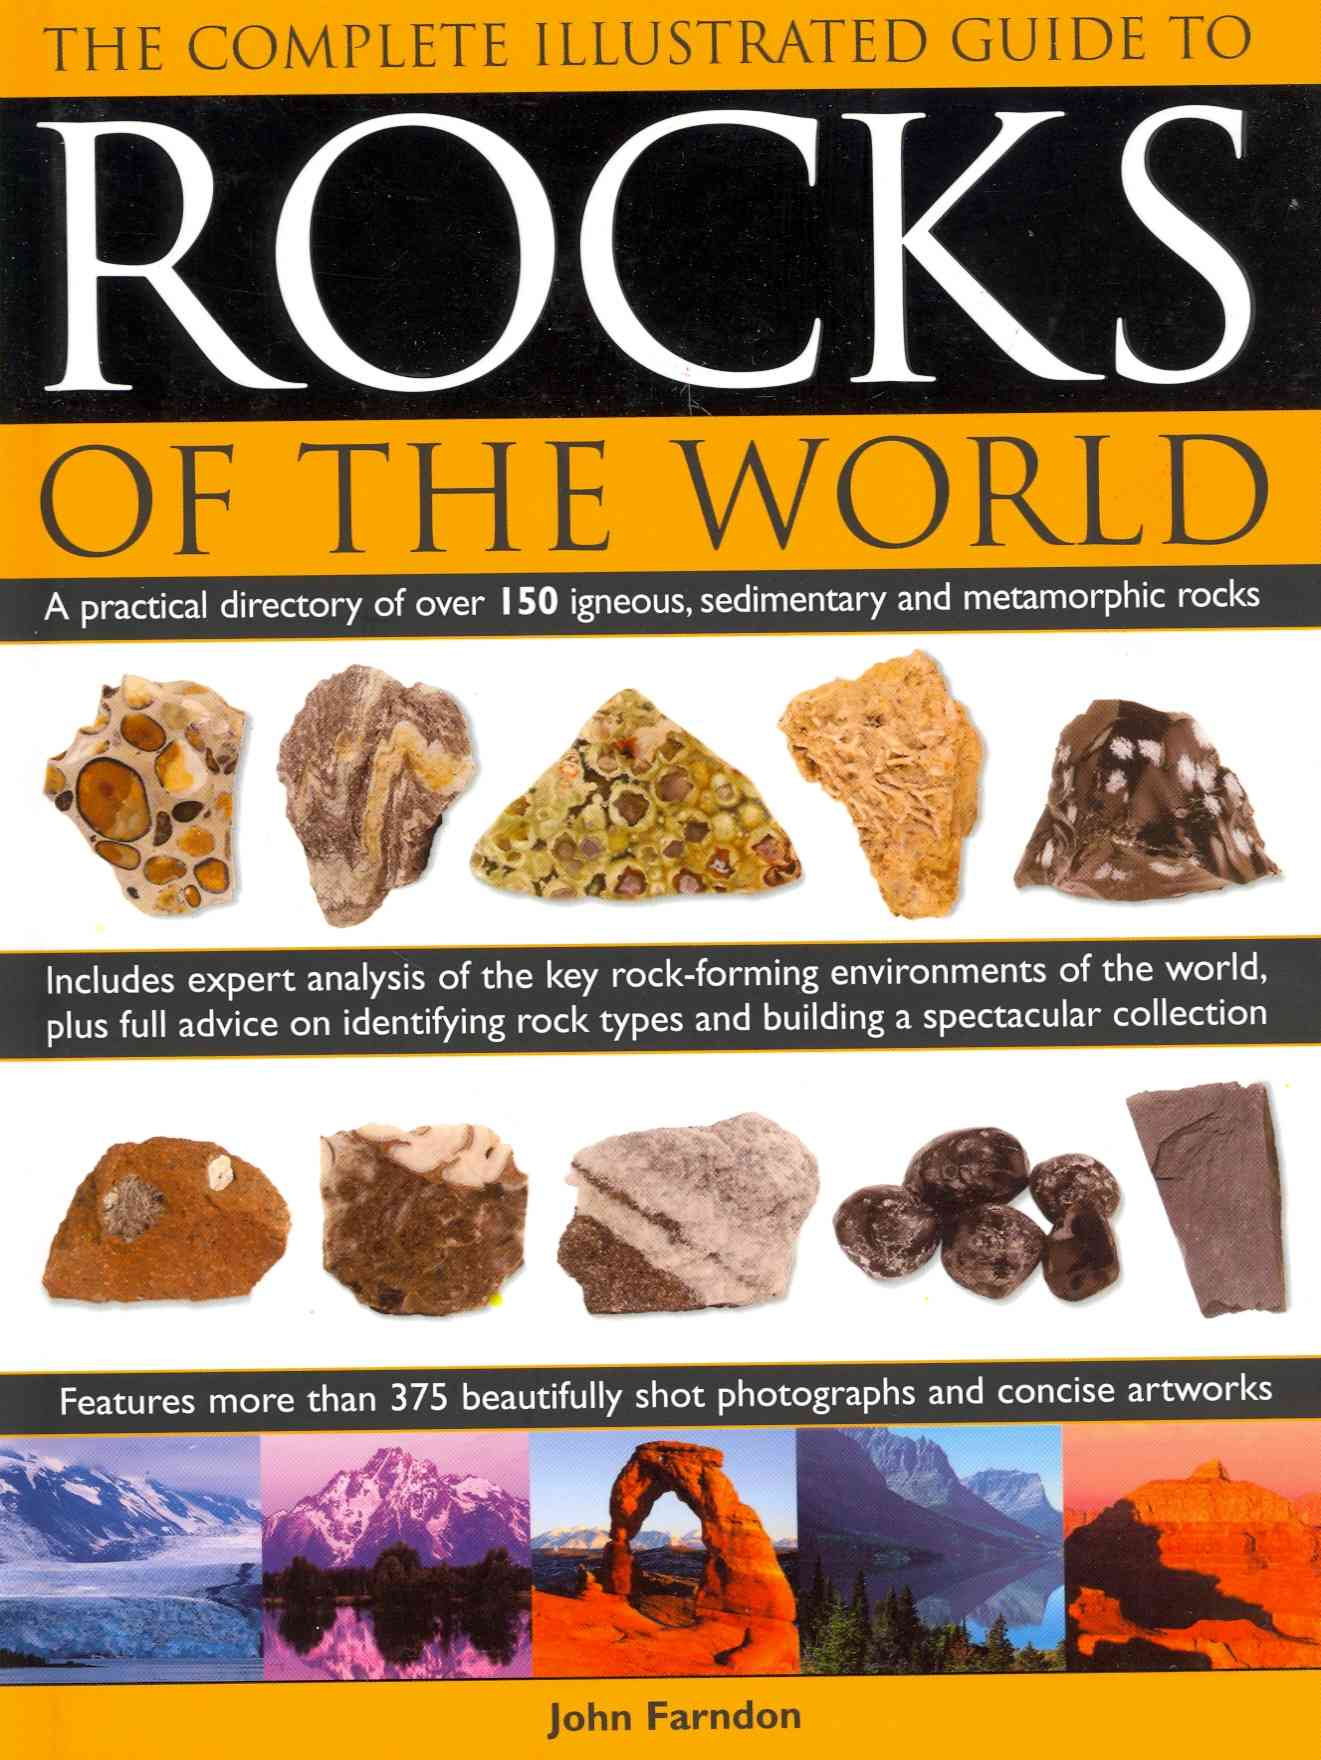 The Complete Illustrated Guide to Rocks of the World By Farndon, John